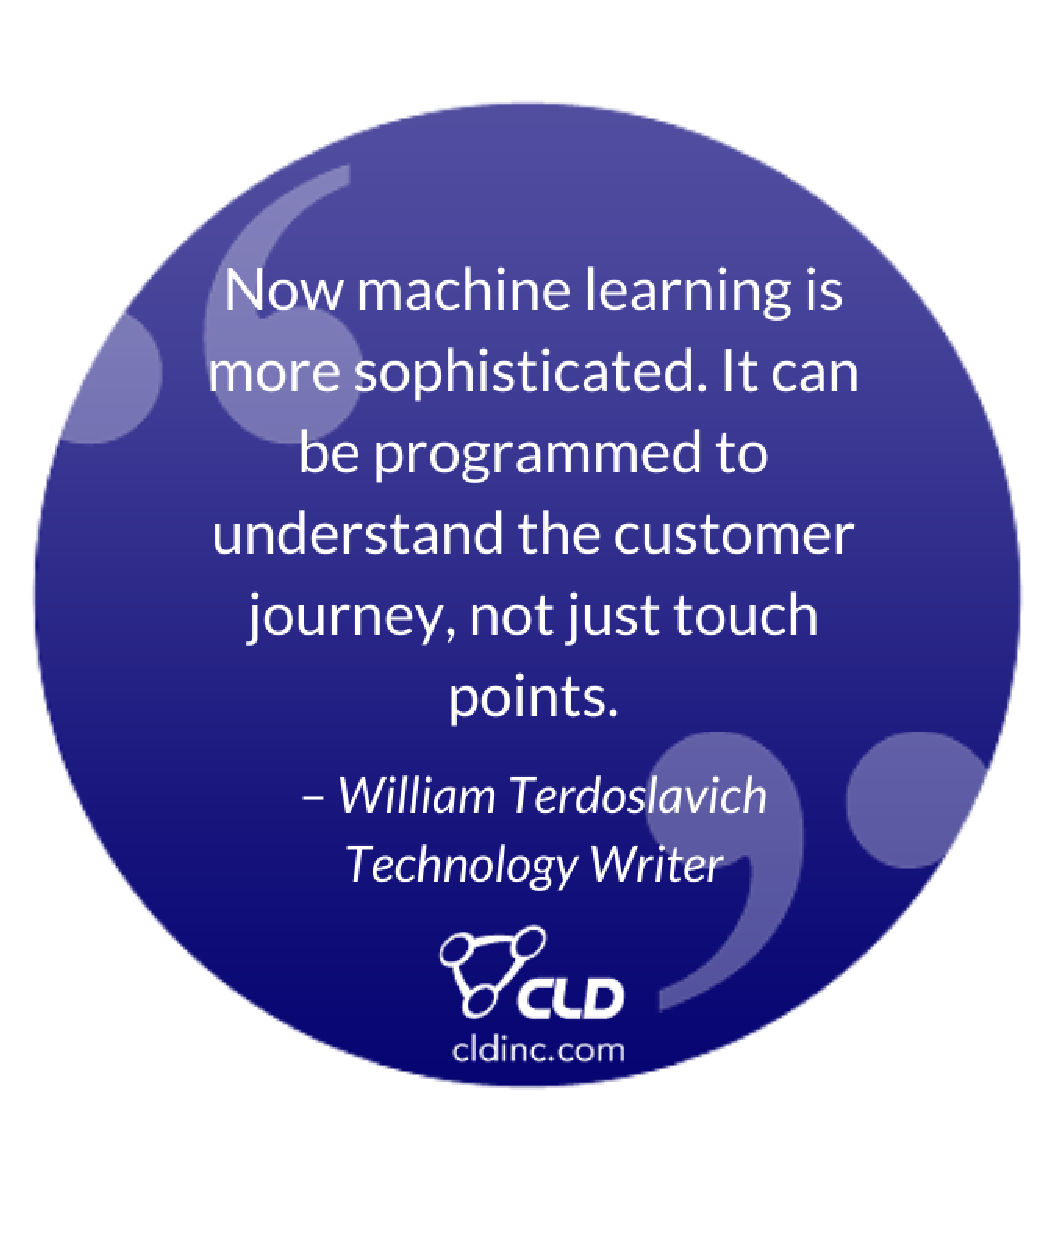 """Now machine learning is more sophisticated. It can be programmed to understand the customer journey, not just touch points."" – William Terdoslavich, Technology Writer"